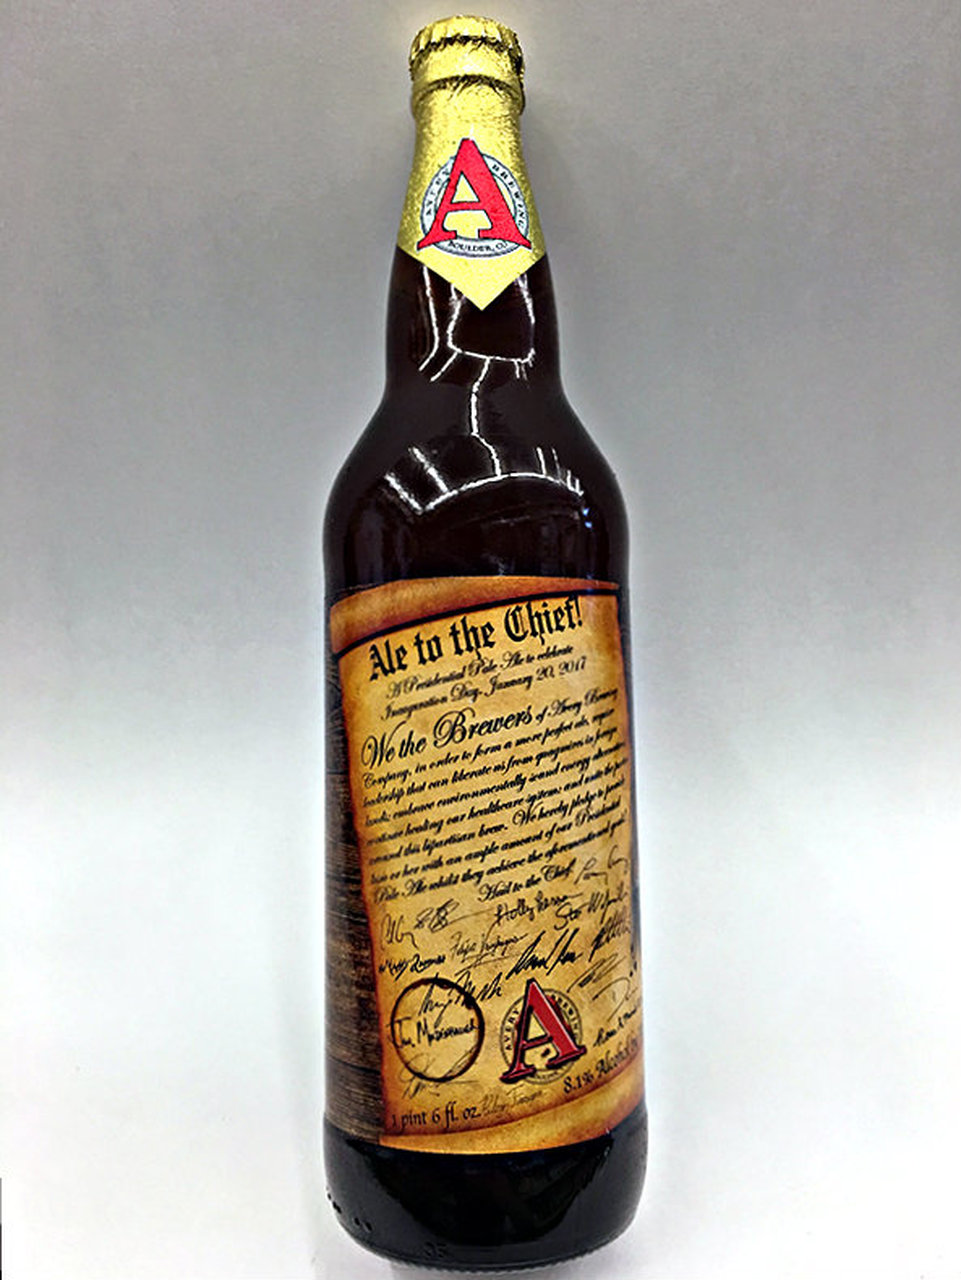 5. Avery Ale To The Chief